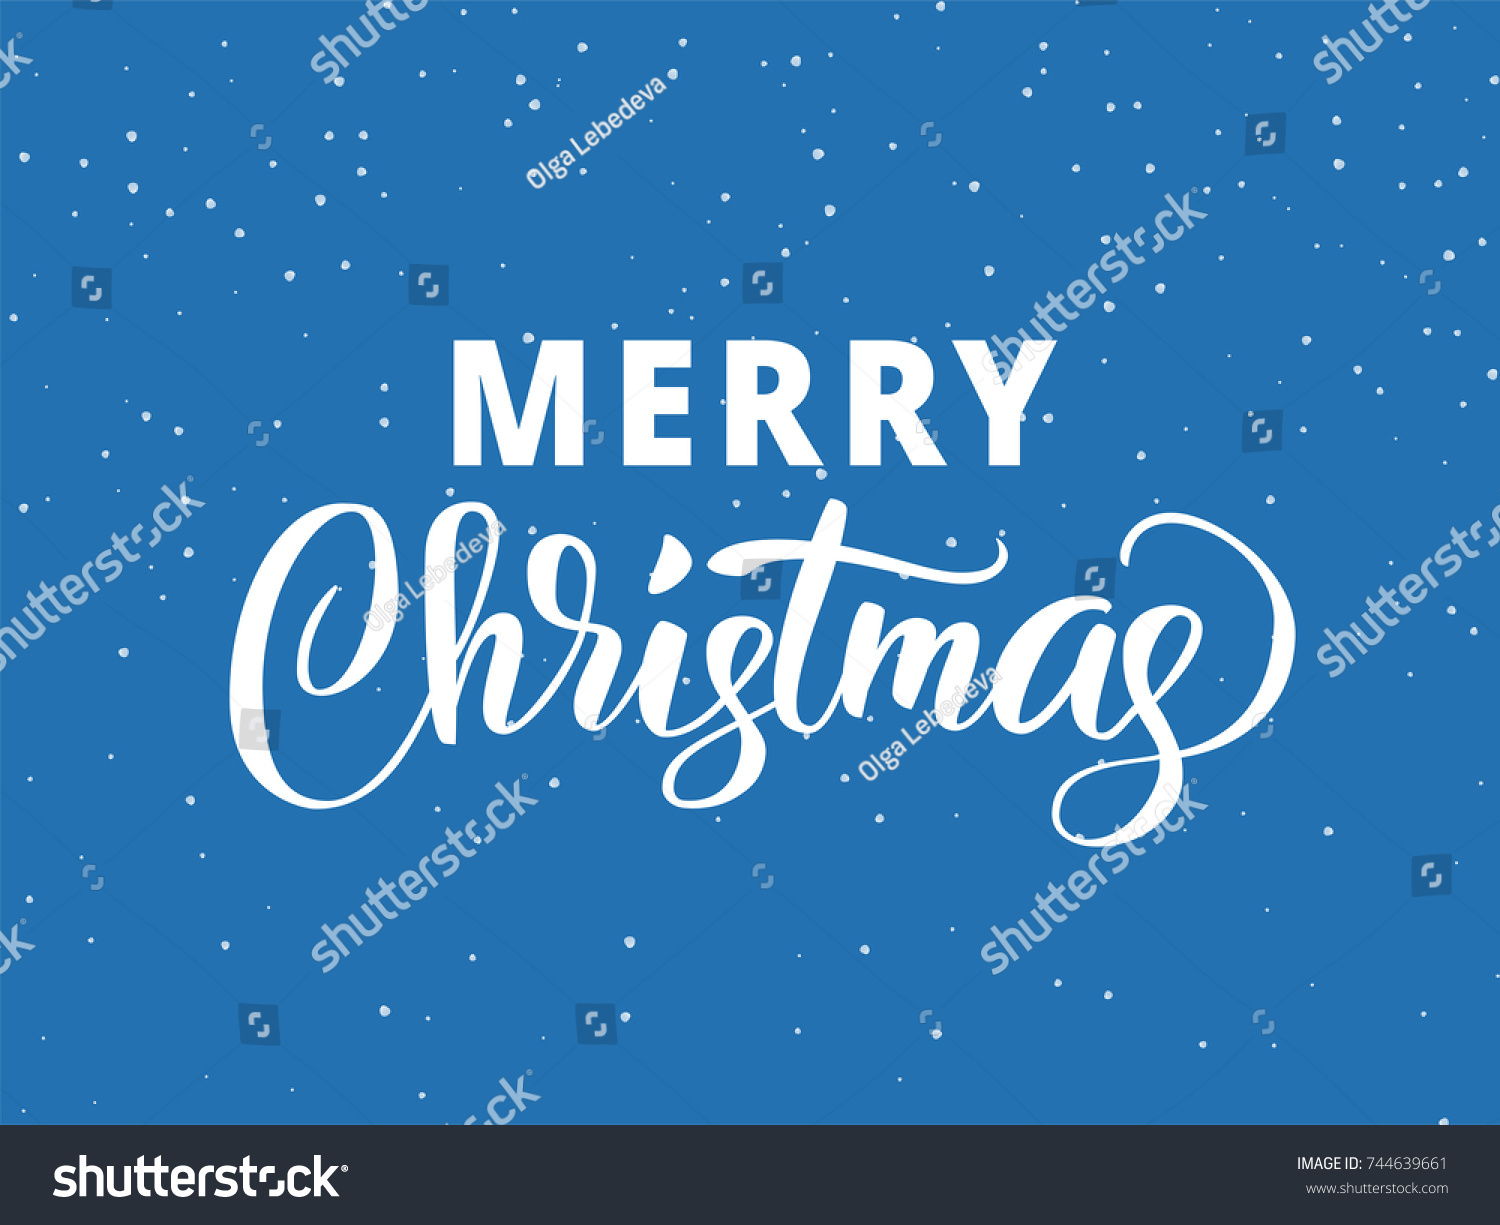 Merry Christmas Hand Drawn Lettering Holiday Stock Vector Royalty